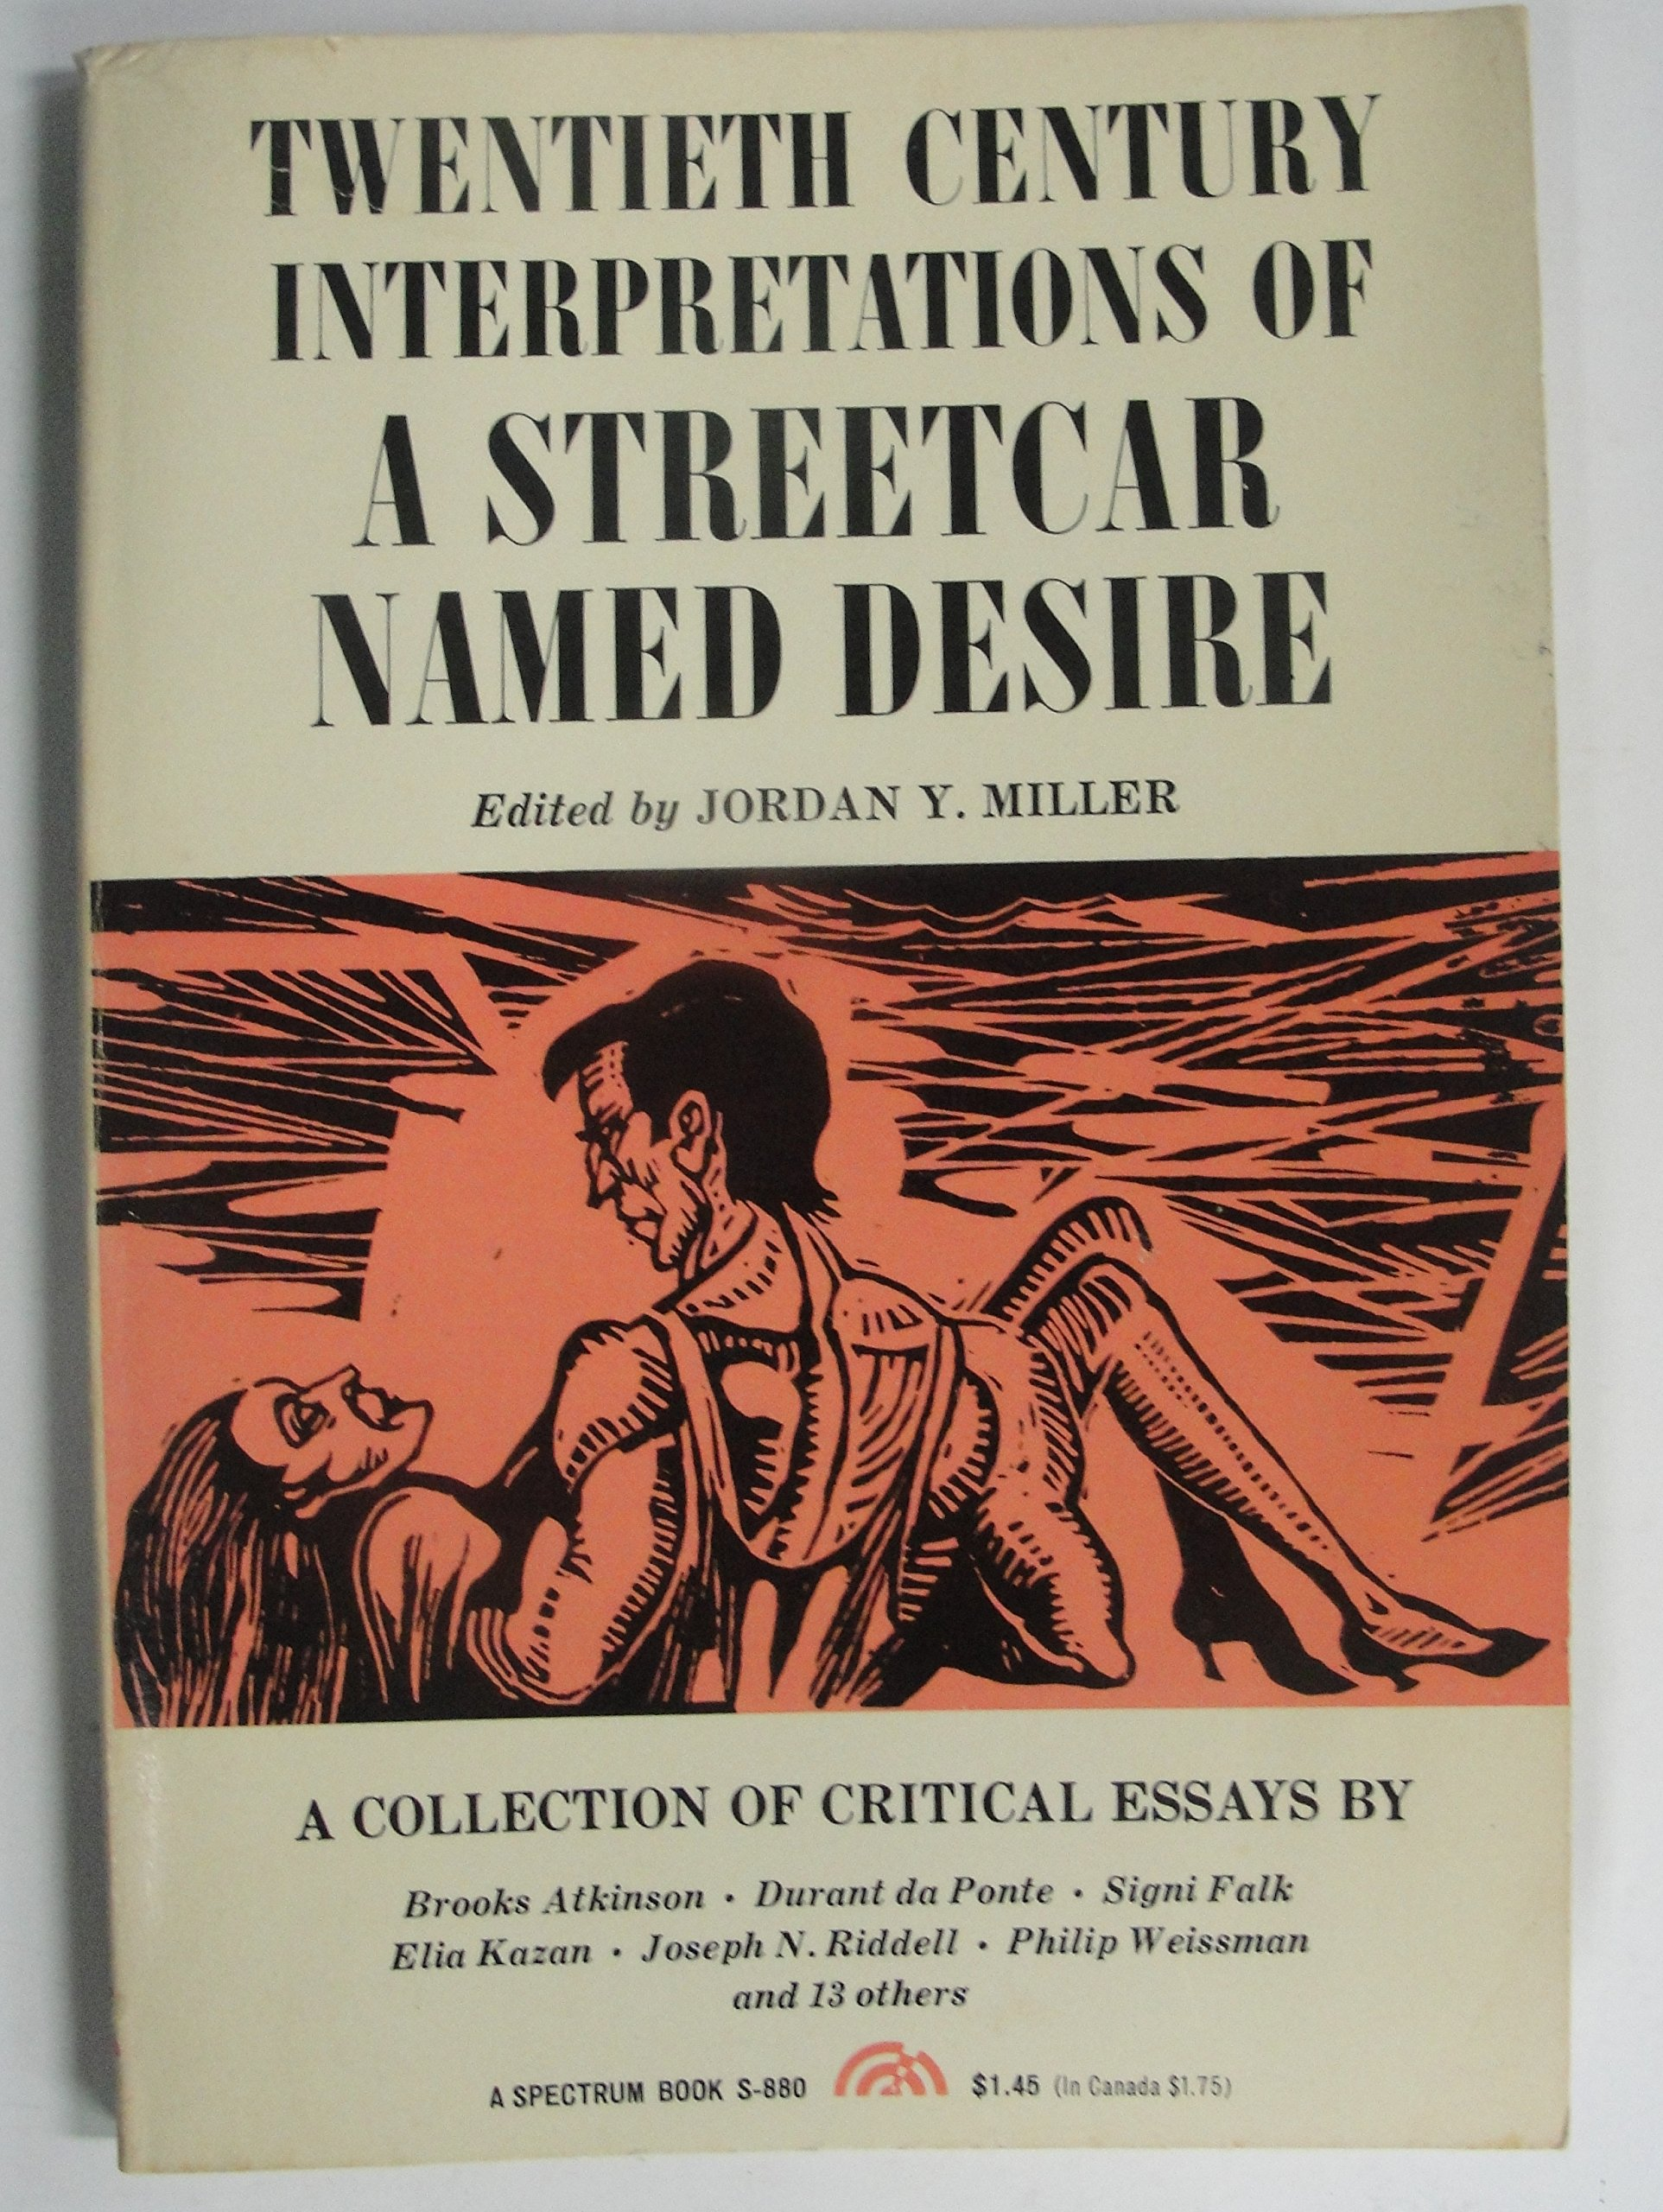 Williams Streetcar Named Desire A Collection Of Critical Essays  Williams Streetcar Named Desire A Collection Of Critical Essays Th  Century Interpretations Jordan Yale Miller  Amazoncom  Books Population Essay In English also English Literature Essay Topics Kids Wood Table And Chairs